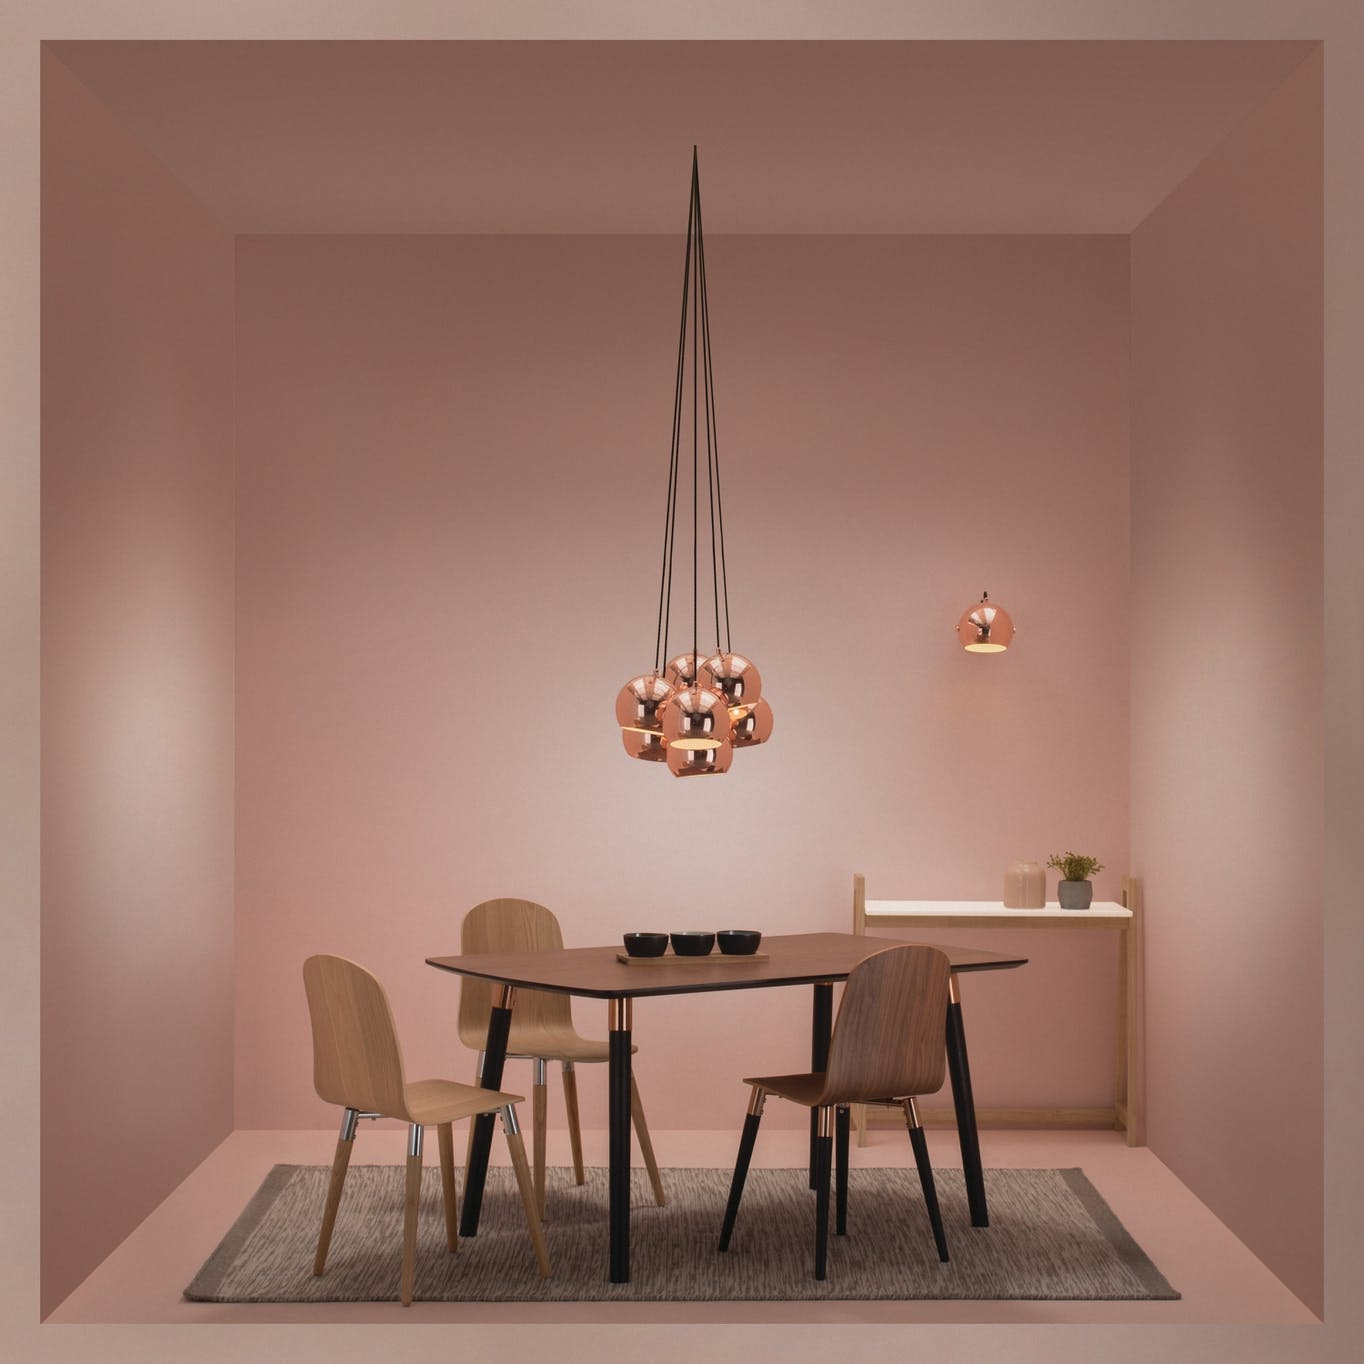 Copper hanging lamps in a pink-themed room